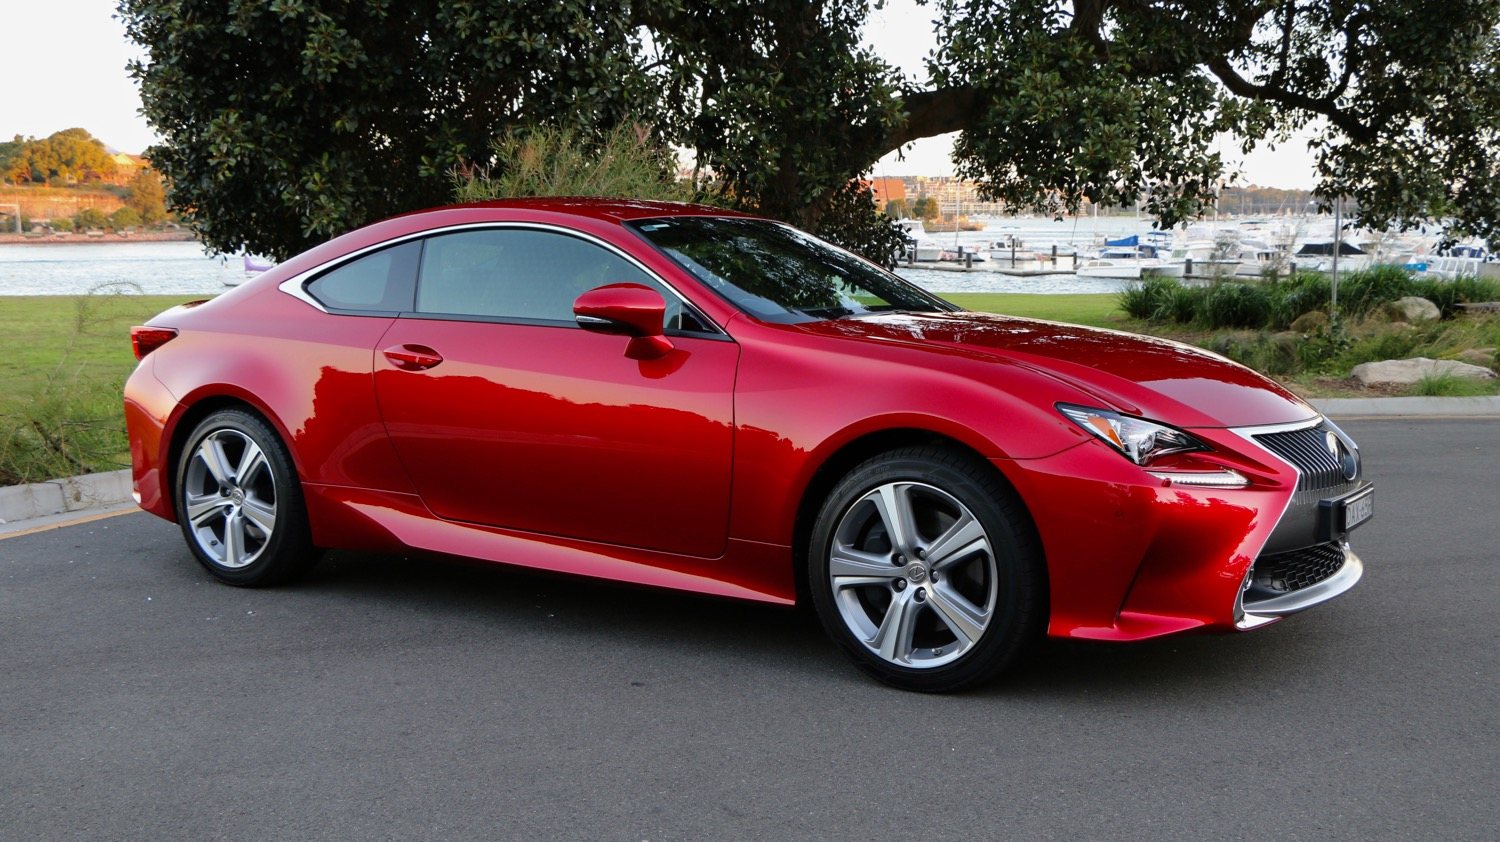 2016 Lexus RC 200t Review